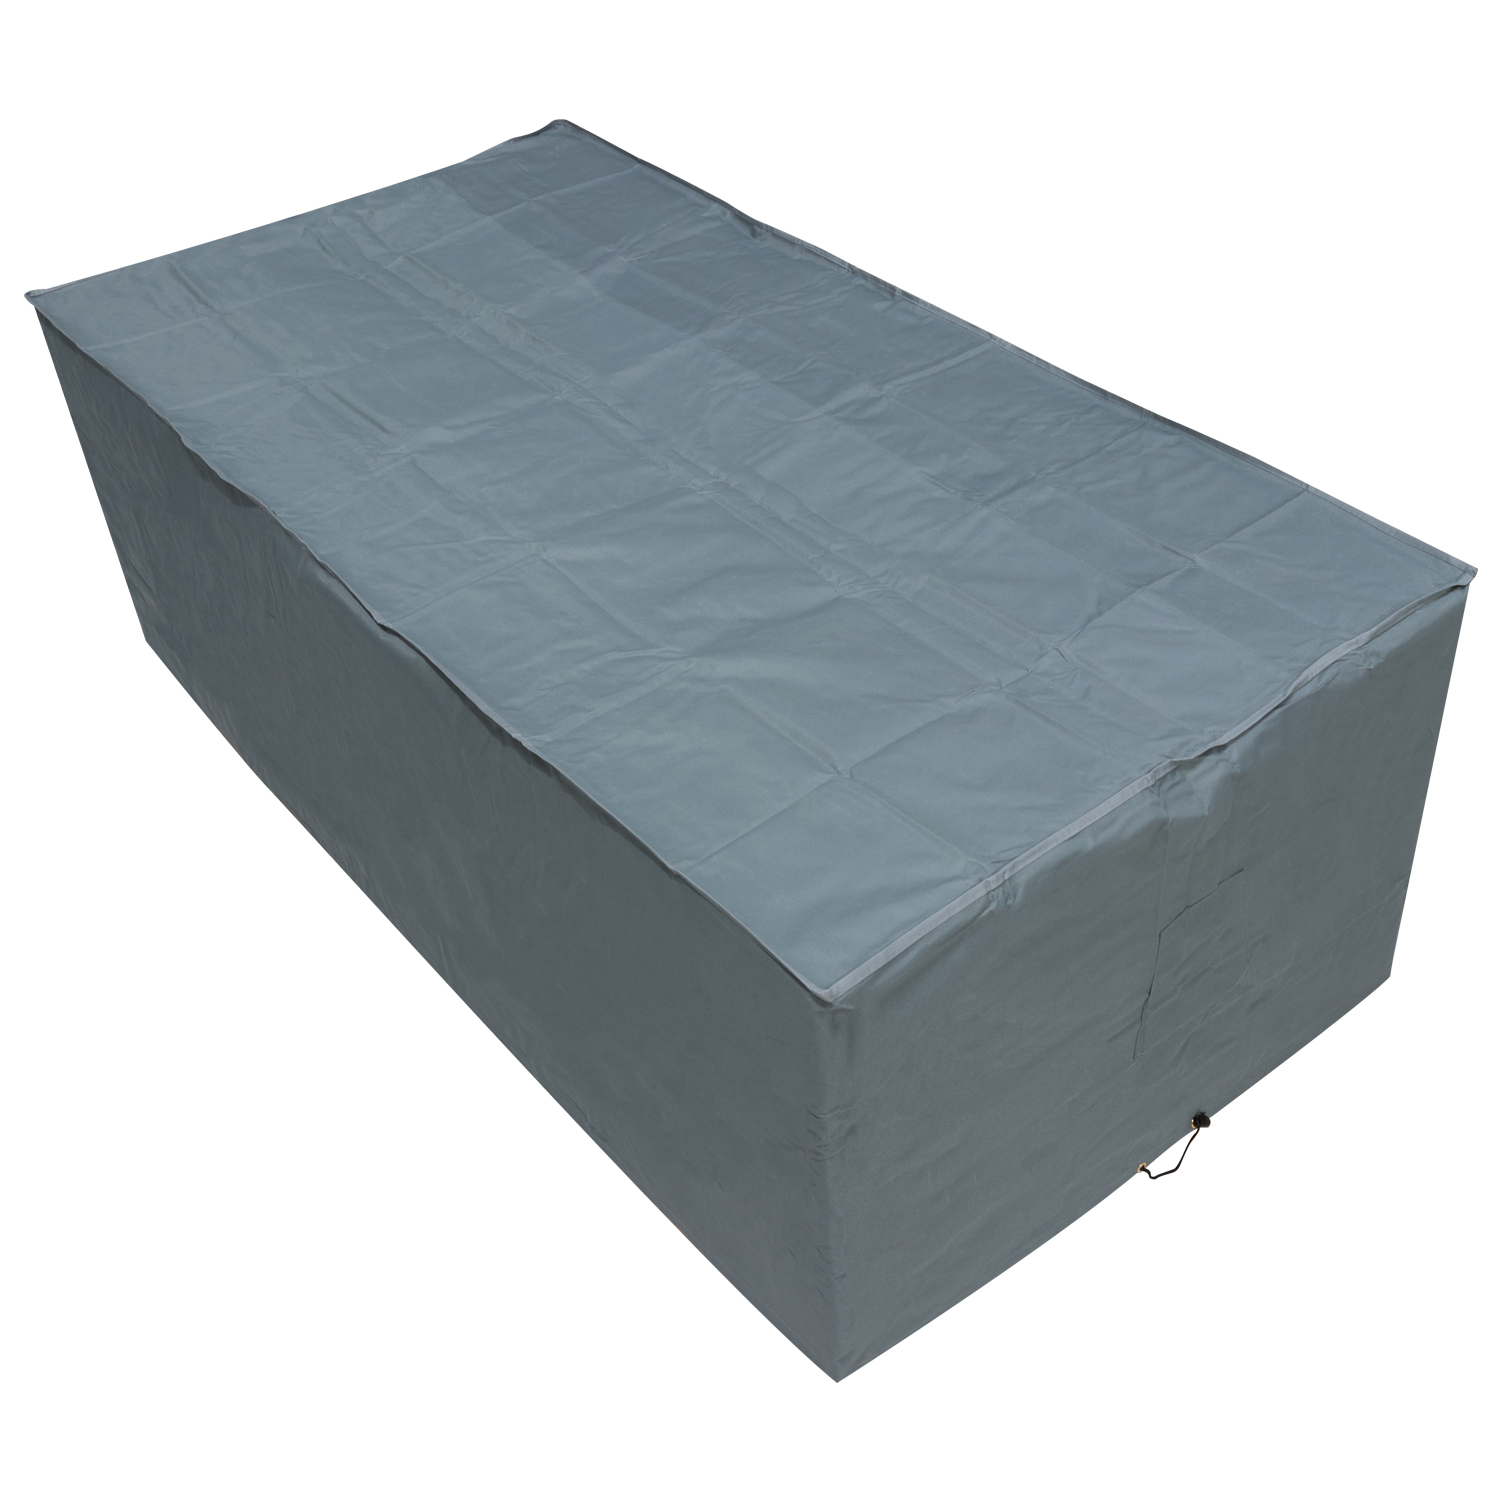 oxbridge large table cover grey covers outdoor value. Black Bedroom Furniture Sets. Home Design Ideas